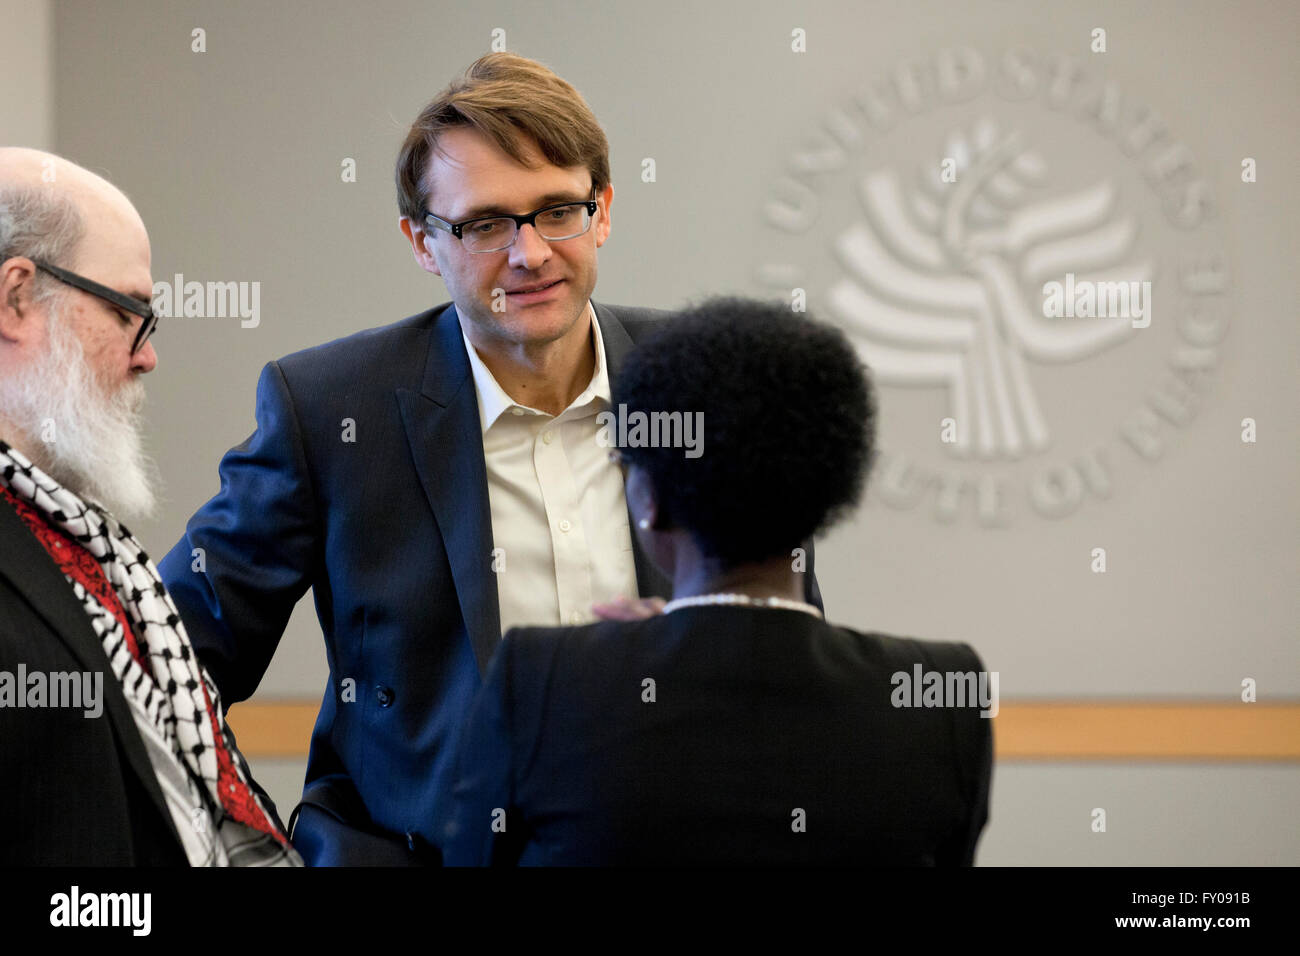 Maciej Bartkowski, scholar, educator, writer - April 04, 2016, Washington, DC USA - Stock Image